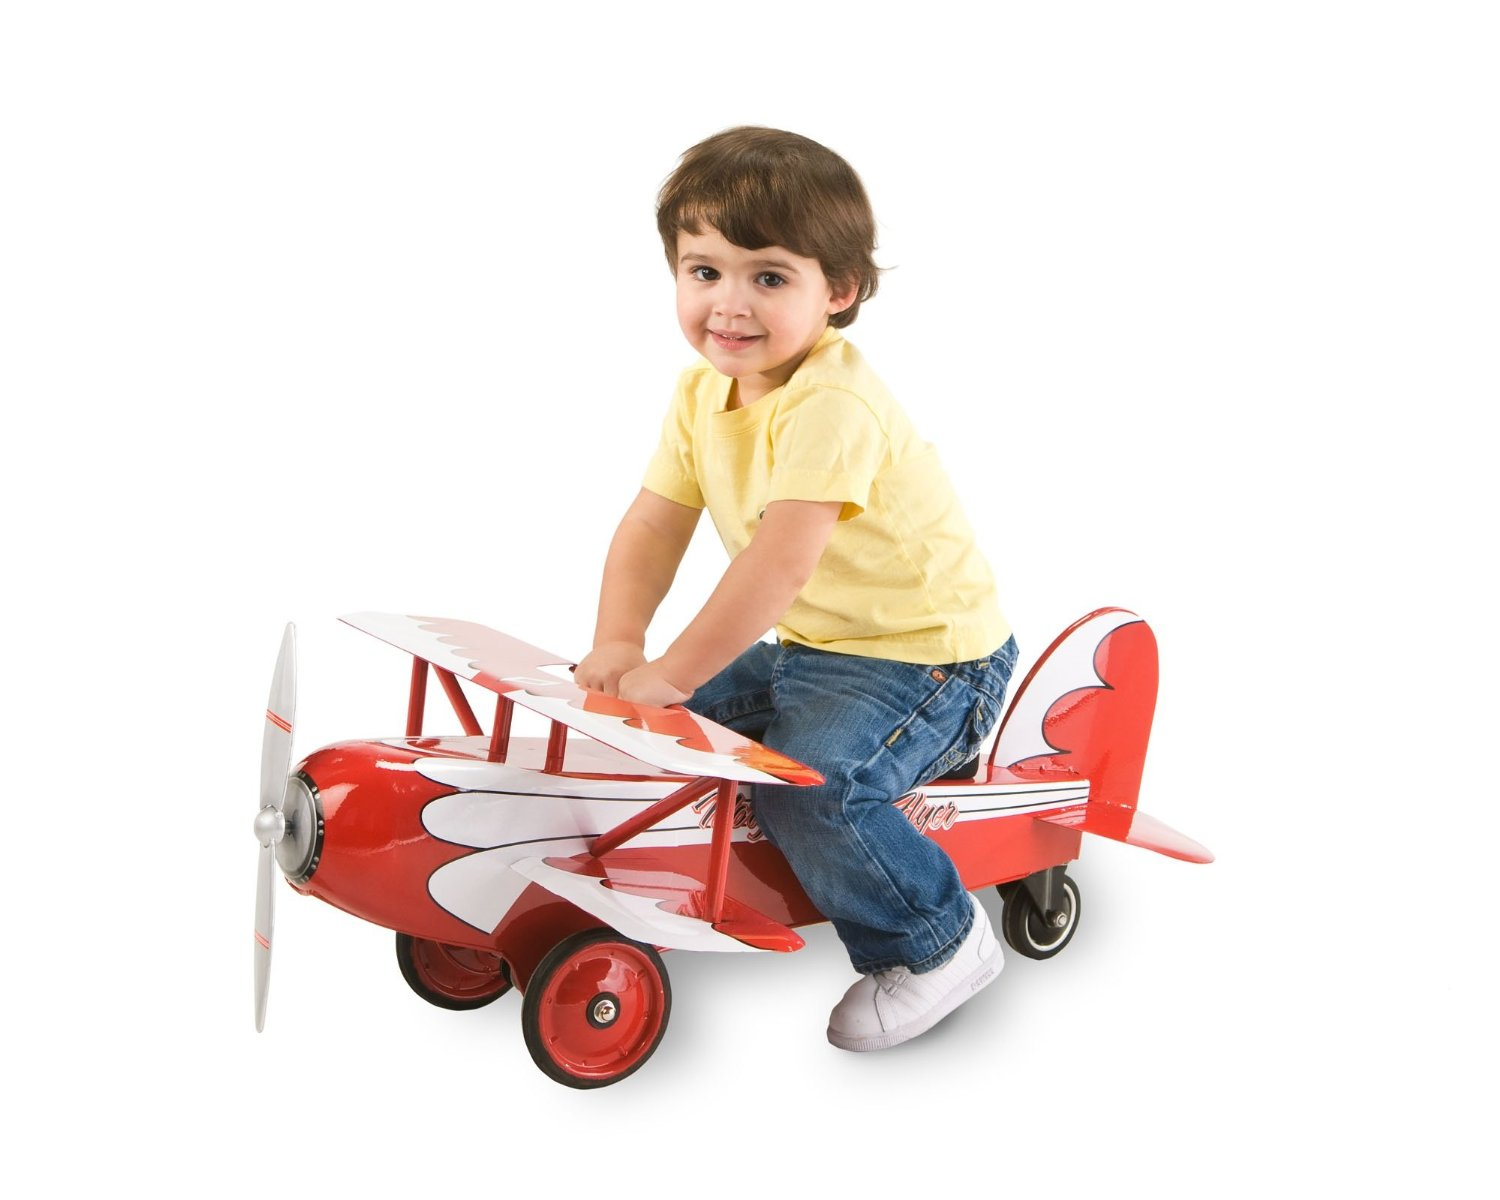 Ride On Toys For Teenagers : Best toy airplanes for children to ride